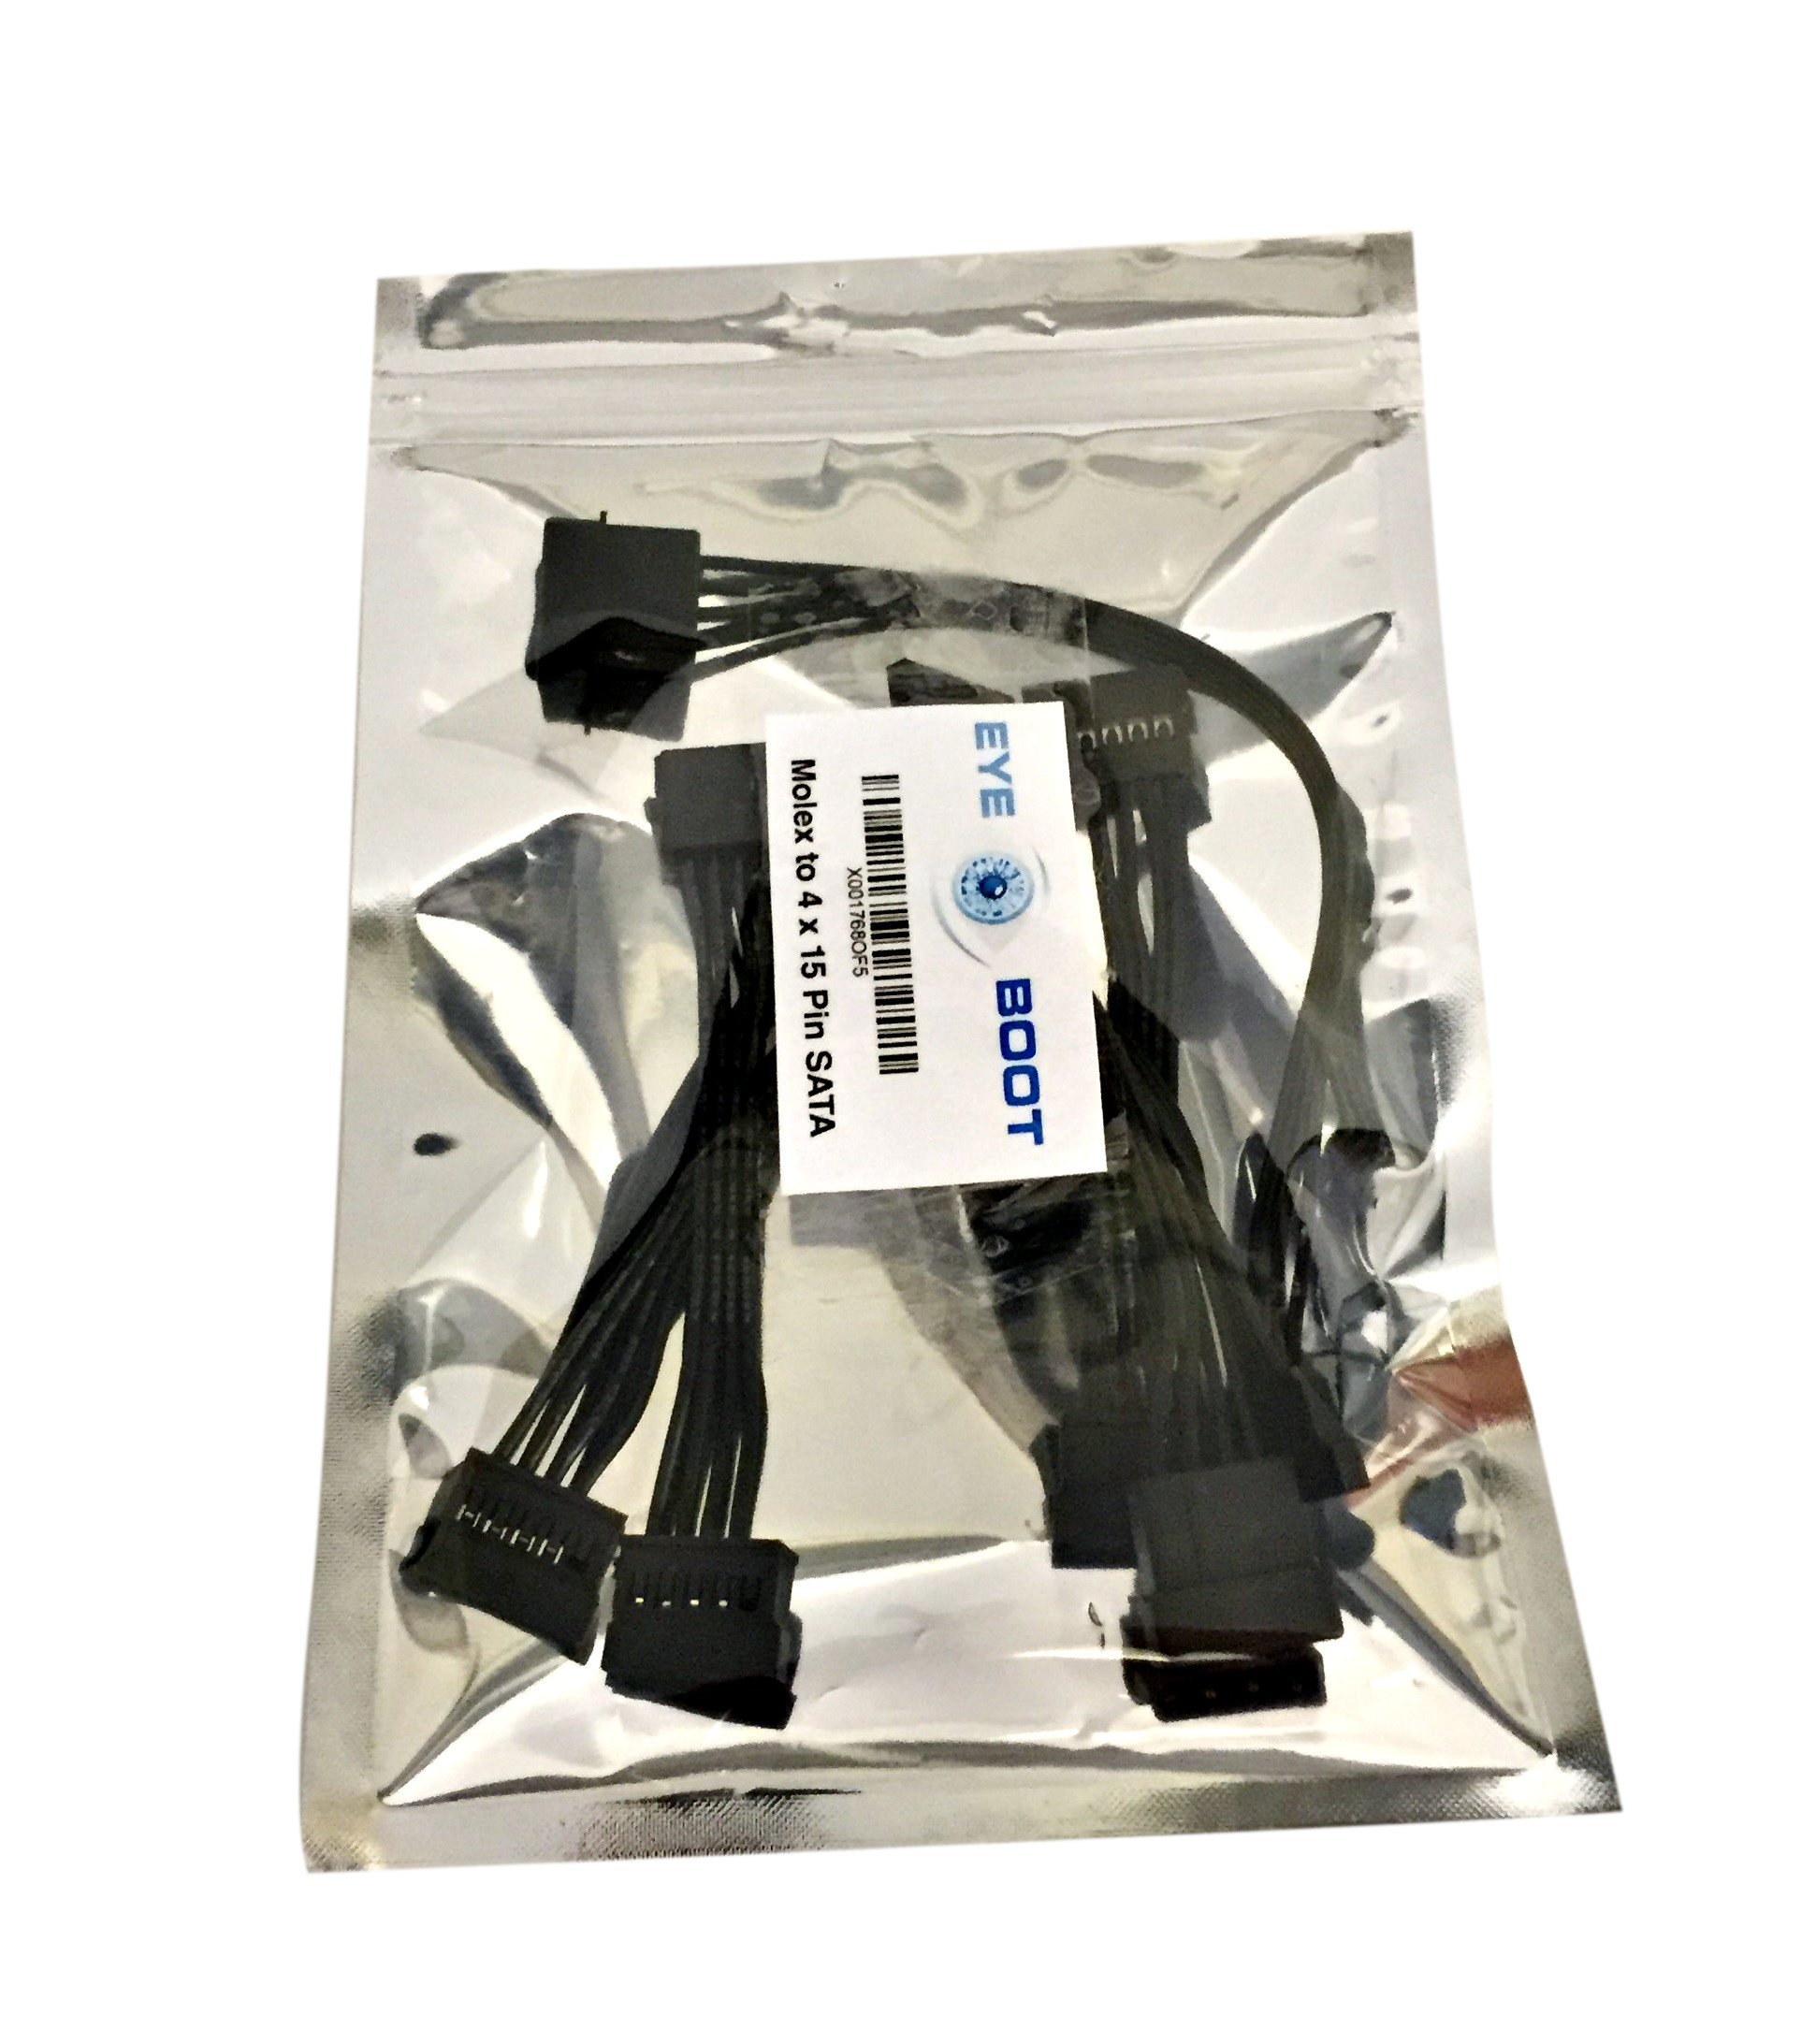 (2 pack) 4 Pin IDE Molex to 4 x 15 Pin SATA Power Y-Cable Adapter Splitter by Eyeboot (Image #5)